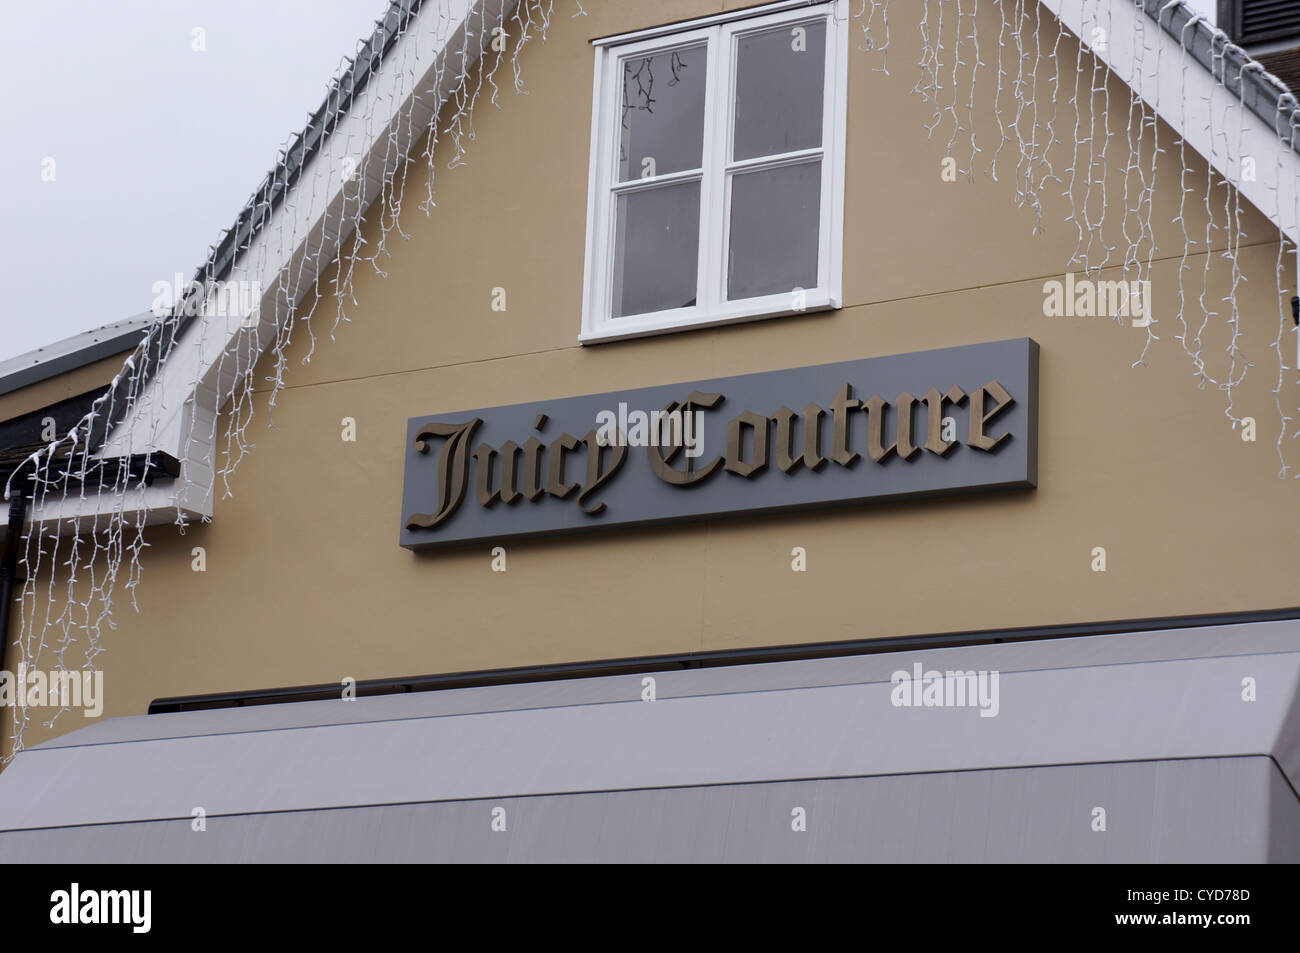 juicy couture shop in bicester village, uk - Stock Image